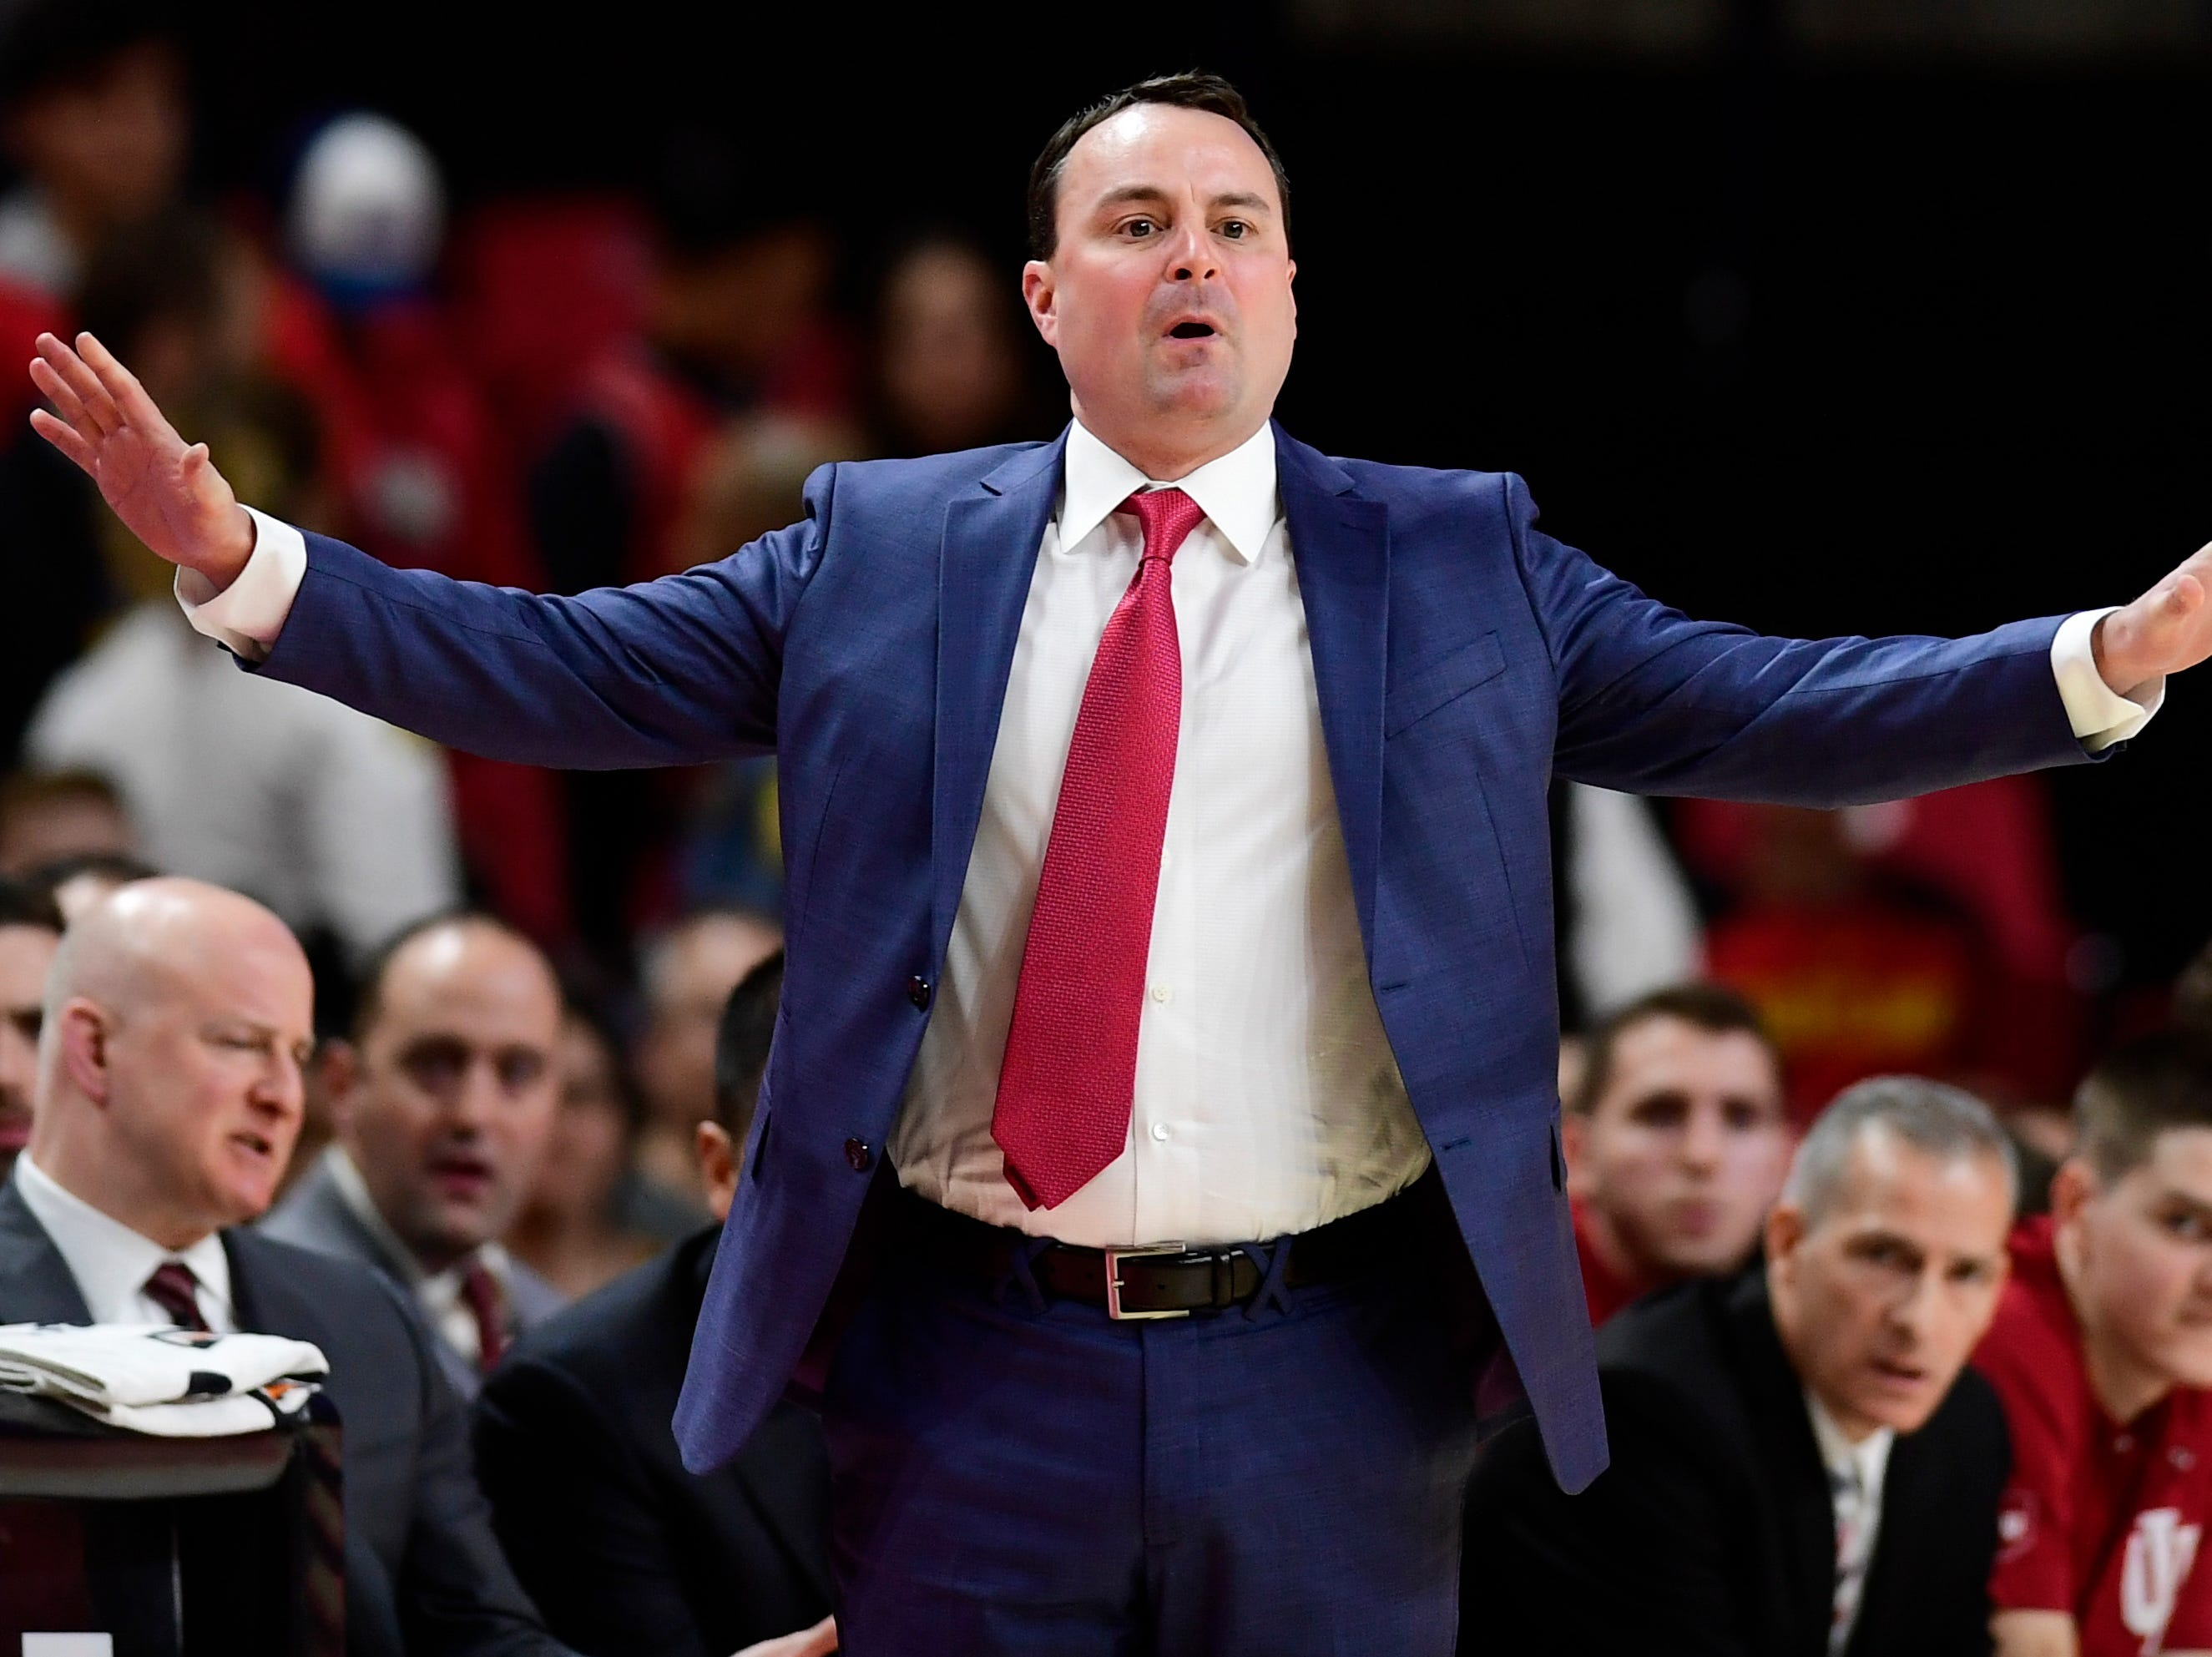 Jan 11, 2019; College Park, MD, USA;  Indiana Hoosiers head coach Archie Miller reacts to play on the court during the first half against the Maryland Terrapins at XFINITY Center. Mandatory Credit: Tommy Gilligan-USA TODAY Sports